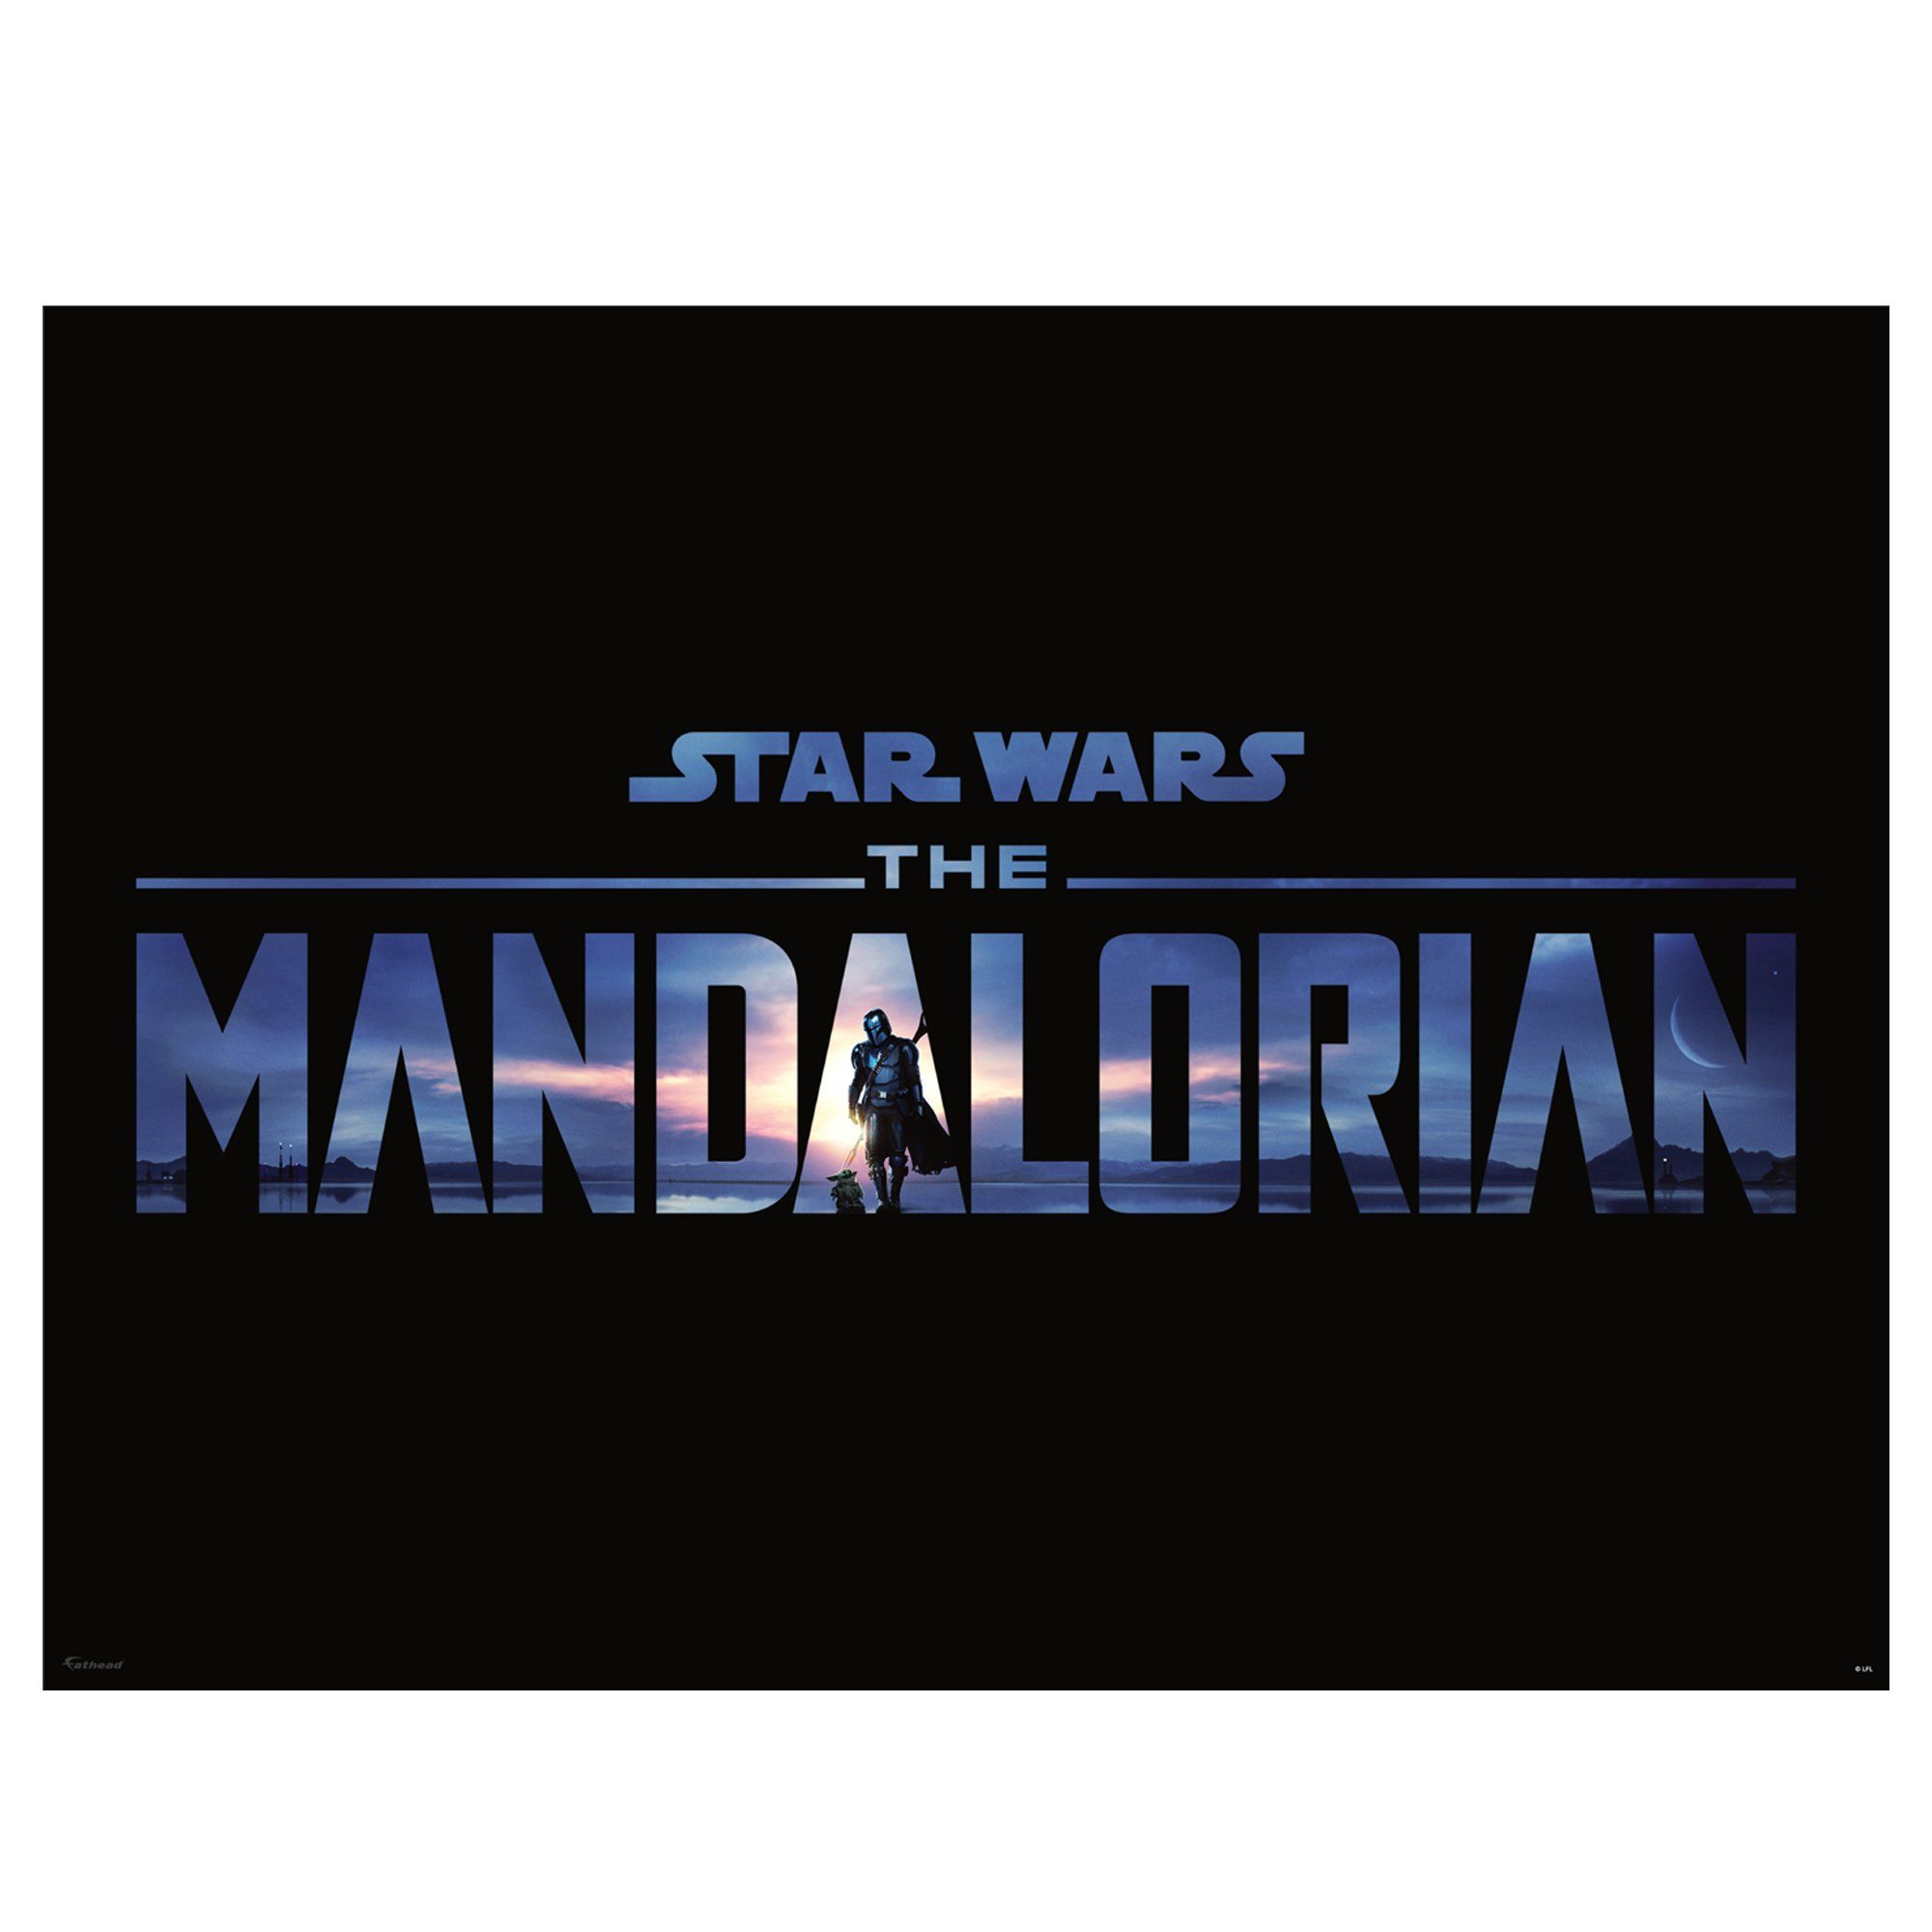 30 The Mandalorian 2 Logo Mural   Officially Licensed Star Wars Removable Wall Adhesive Decal XL by Fathead   Vinyl